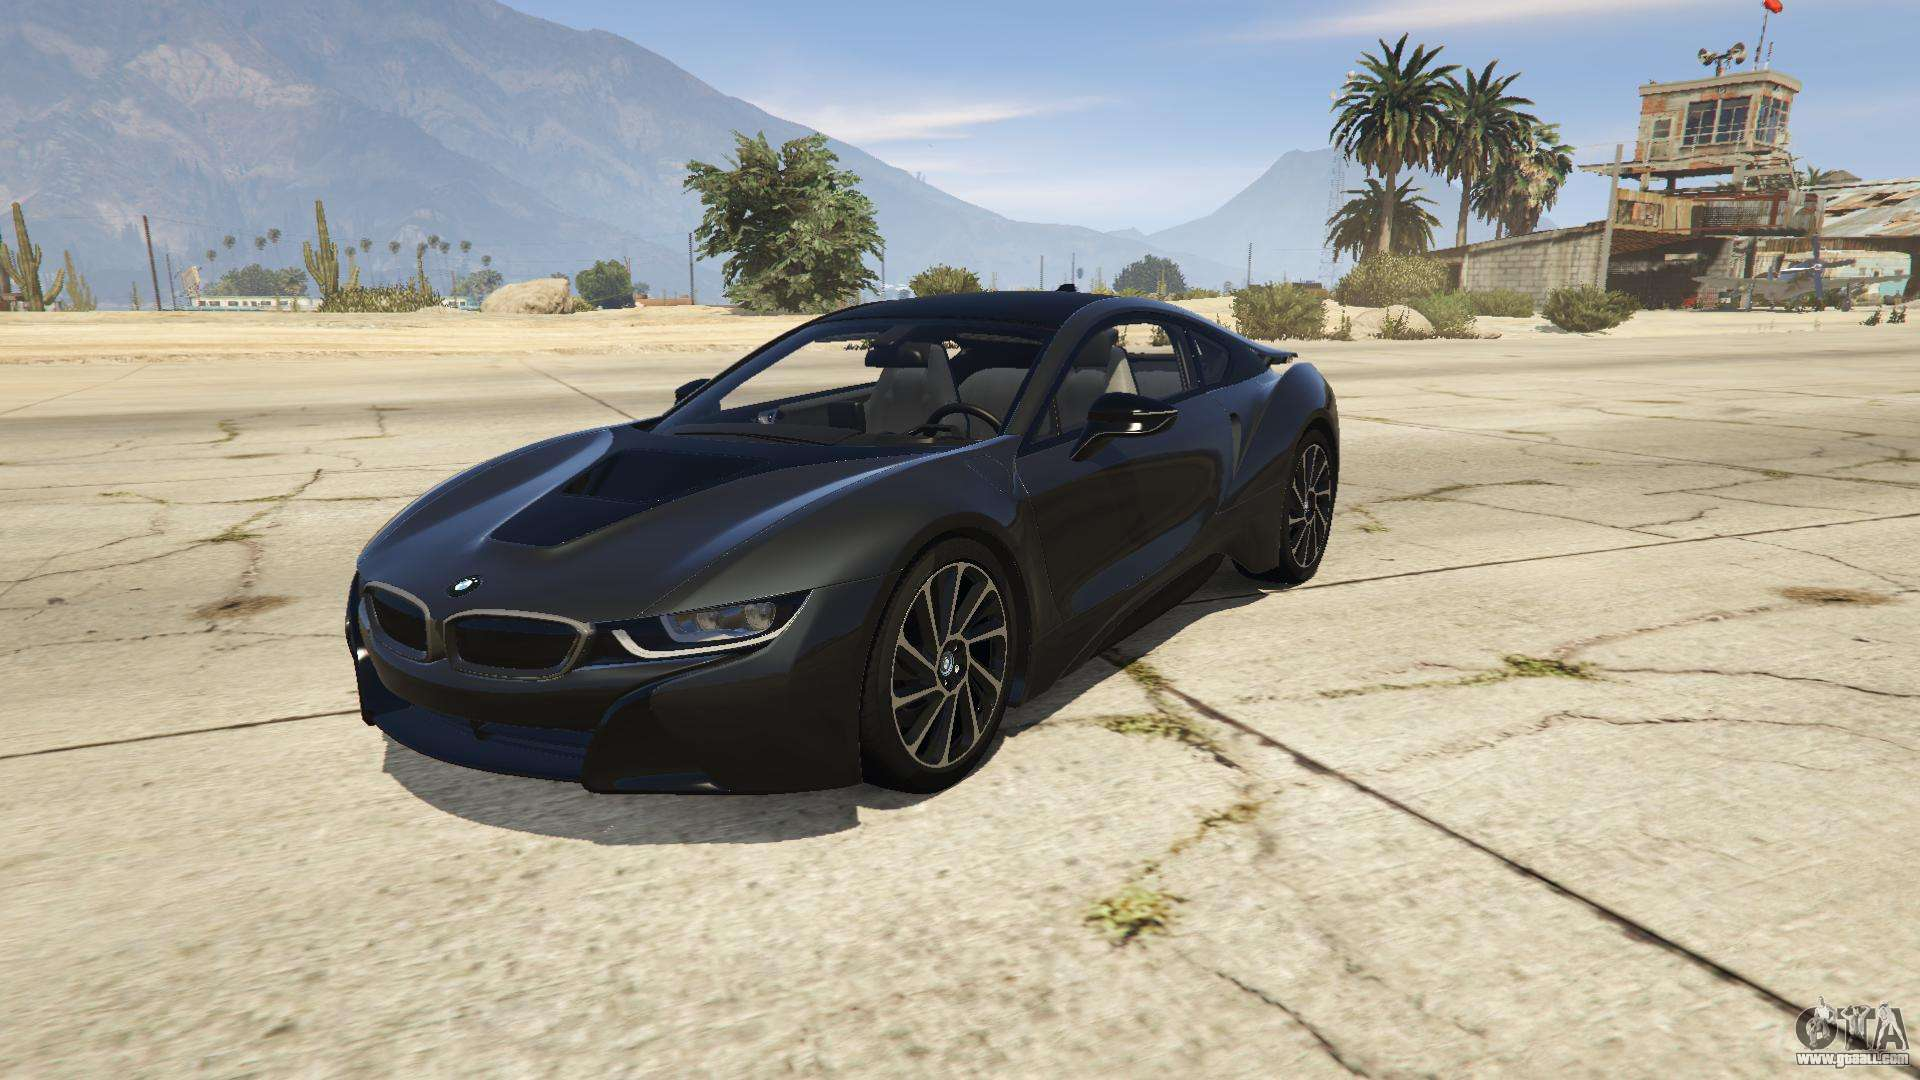 bmw m3 pc game with 73001 2015 Bmw I8 on Need For Speed Most Wanted Demo softonic further Bmw Bmw F30 M3 likewise Car Bmw Rims Blurred Blue Cars as well Need For Speed Most Wanted Pc Full Mega further City Car Driving Free Download Full.